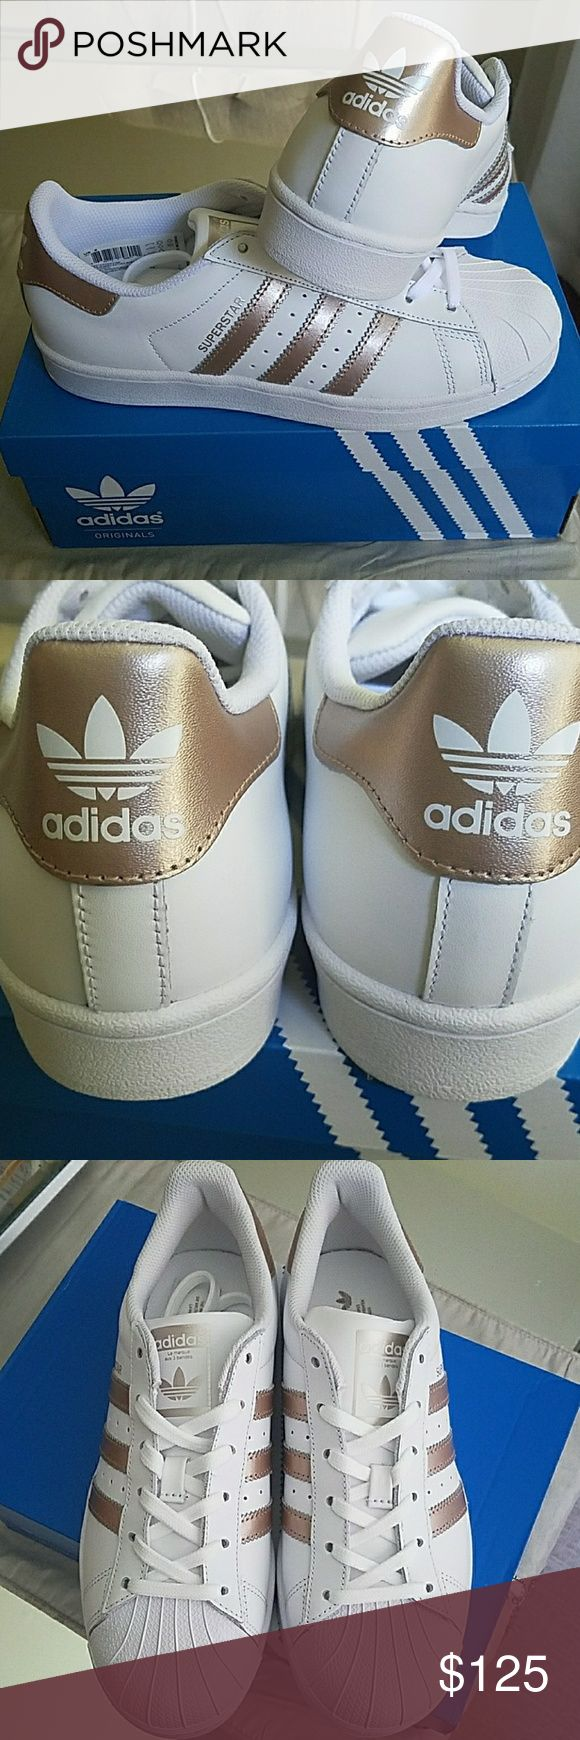 adidas Originals Superstar Boost Bronze Silver